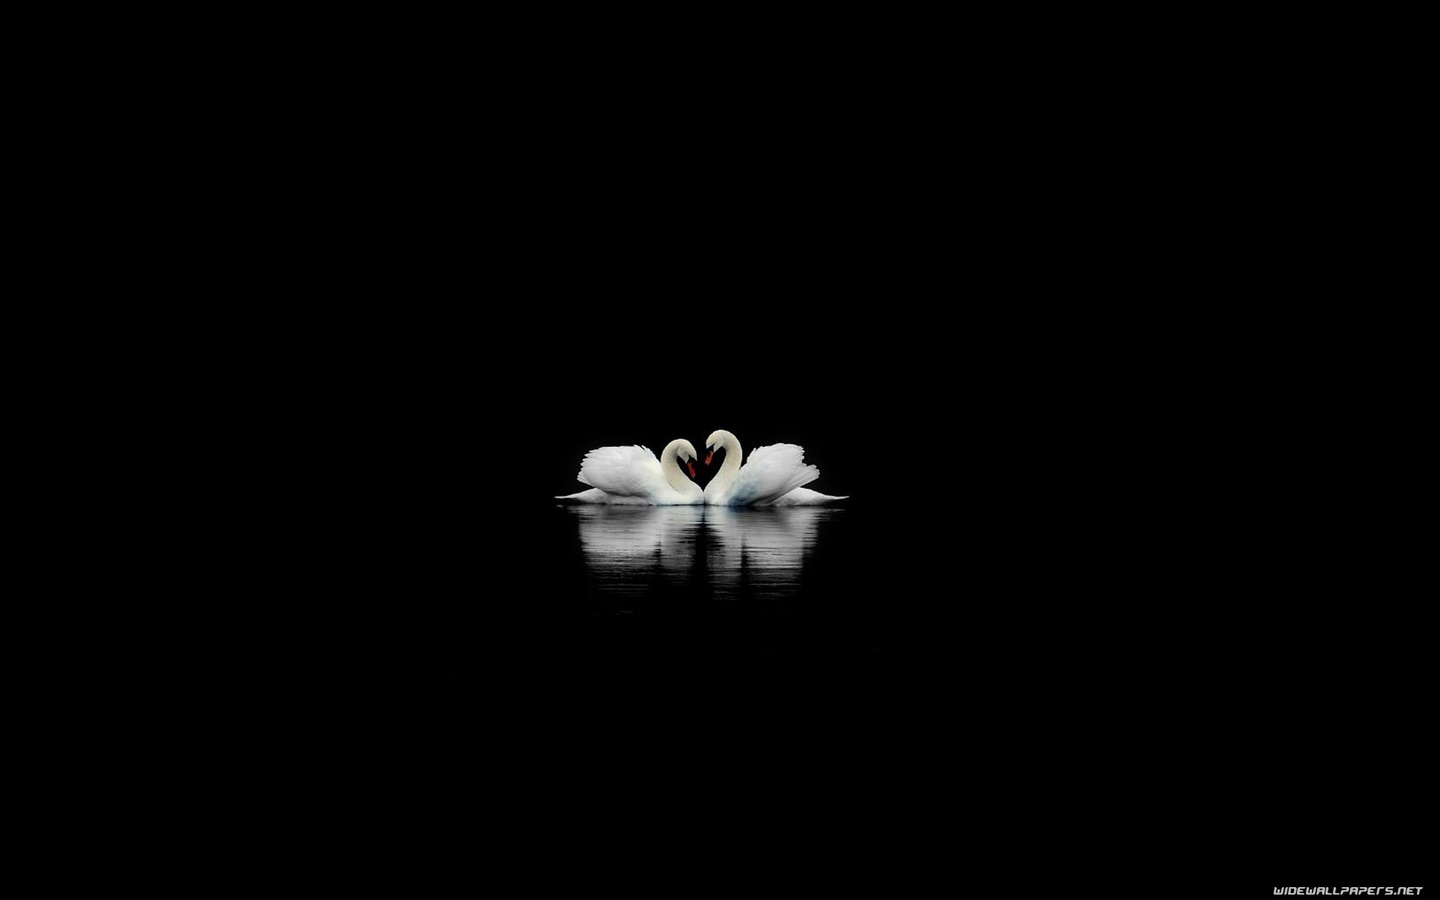 Swans on a Black Lake Wallpaper